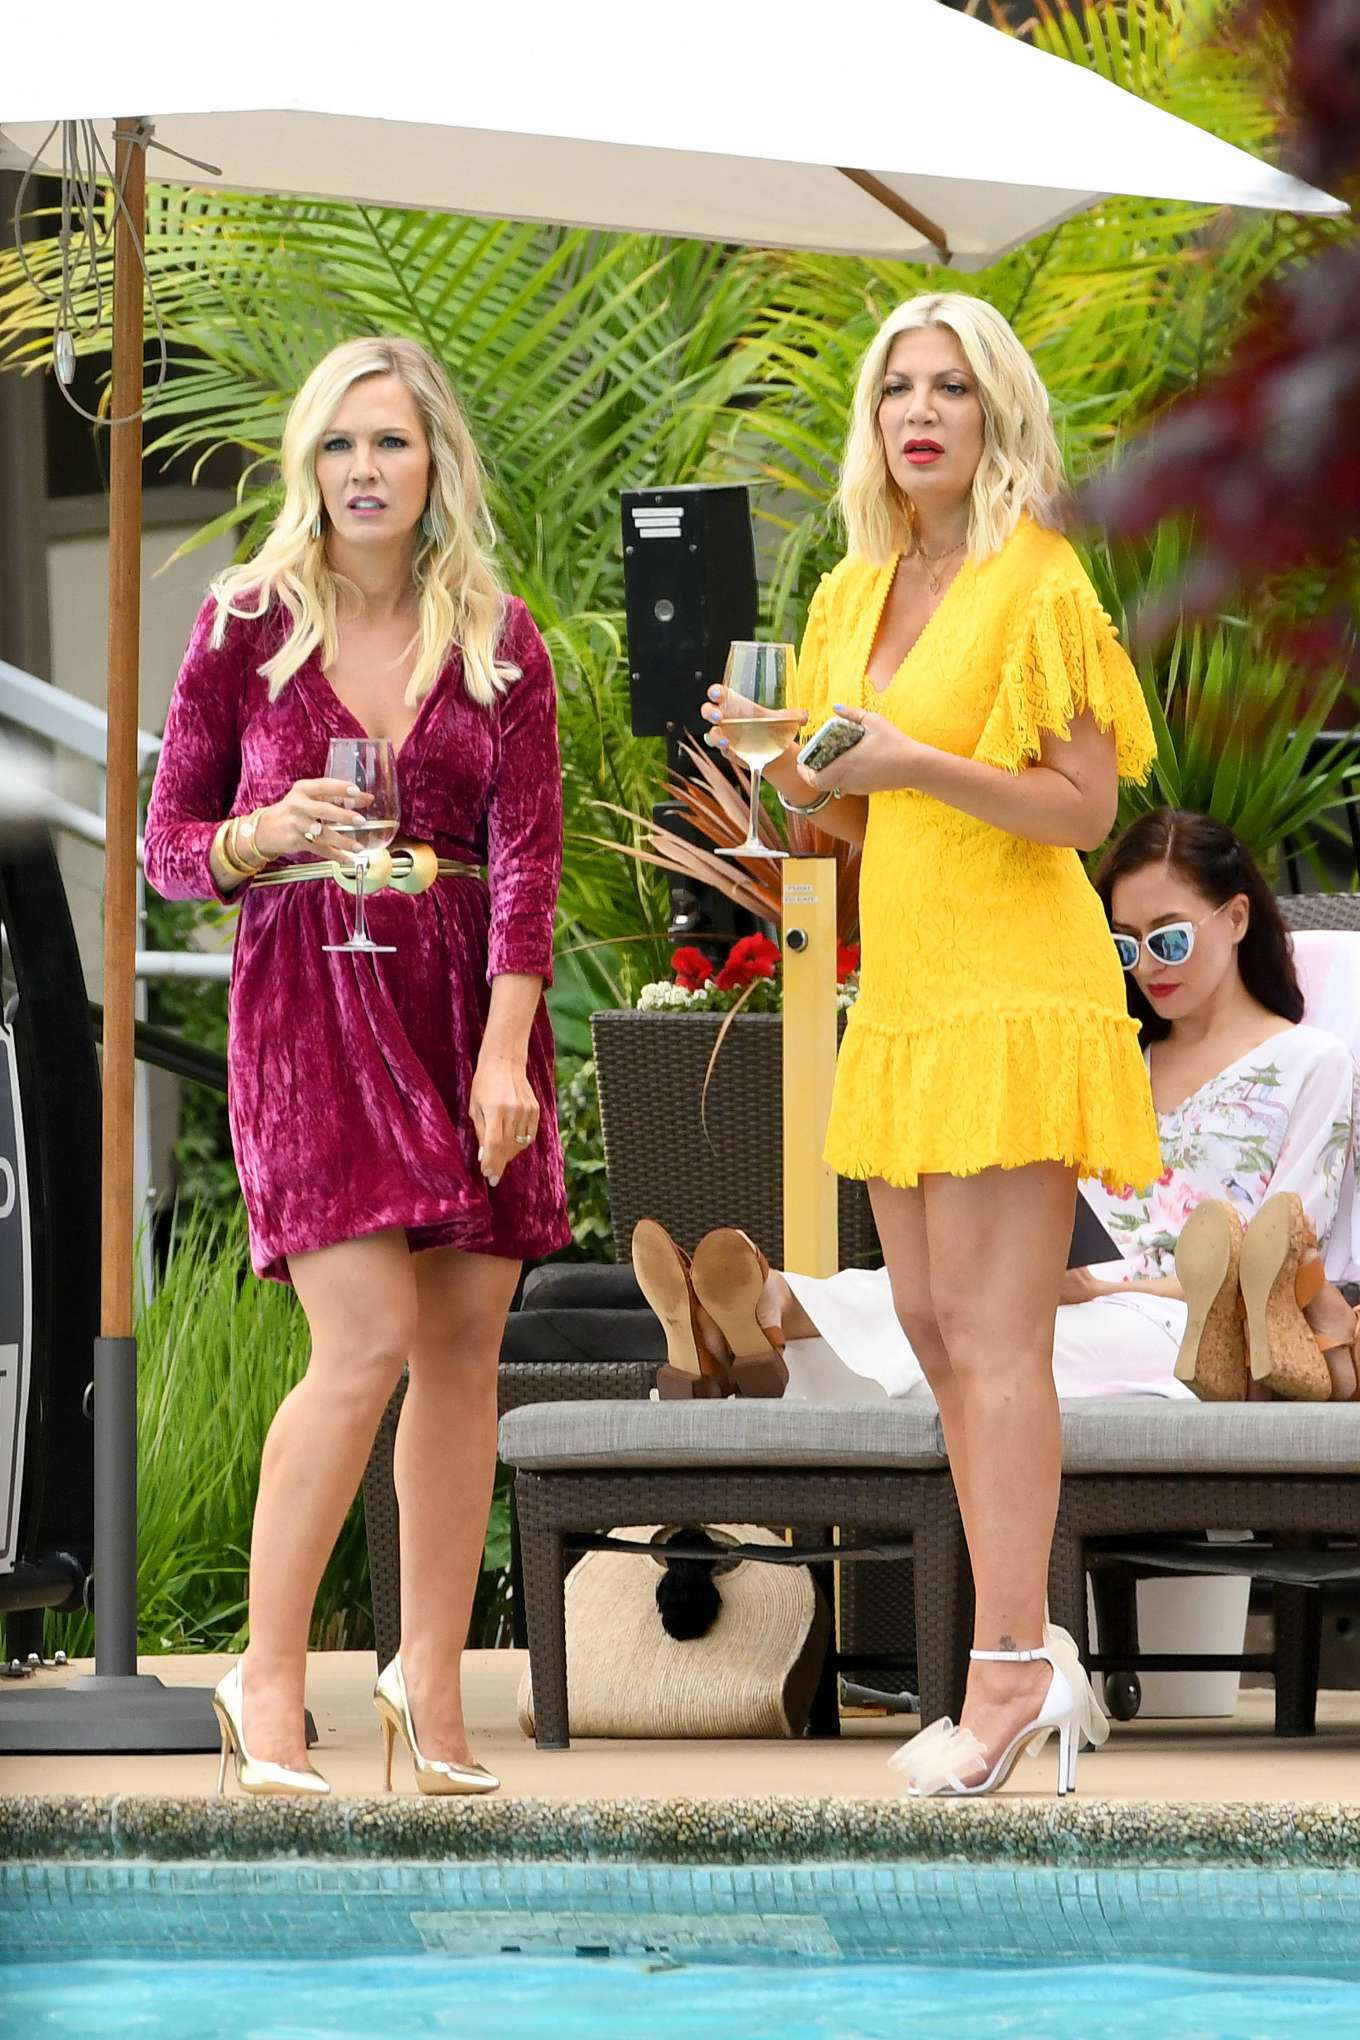 Tori Spelling 2019 : Tori Spelling and Jennie Garth: On the set of Beverly Hills 90210-01